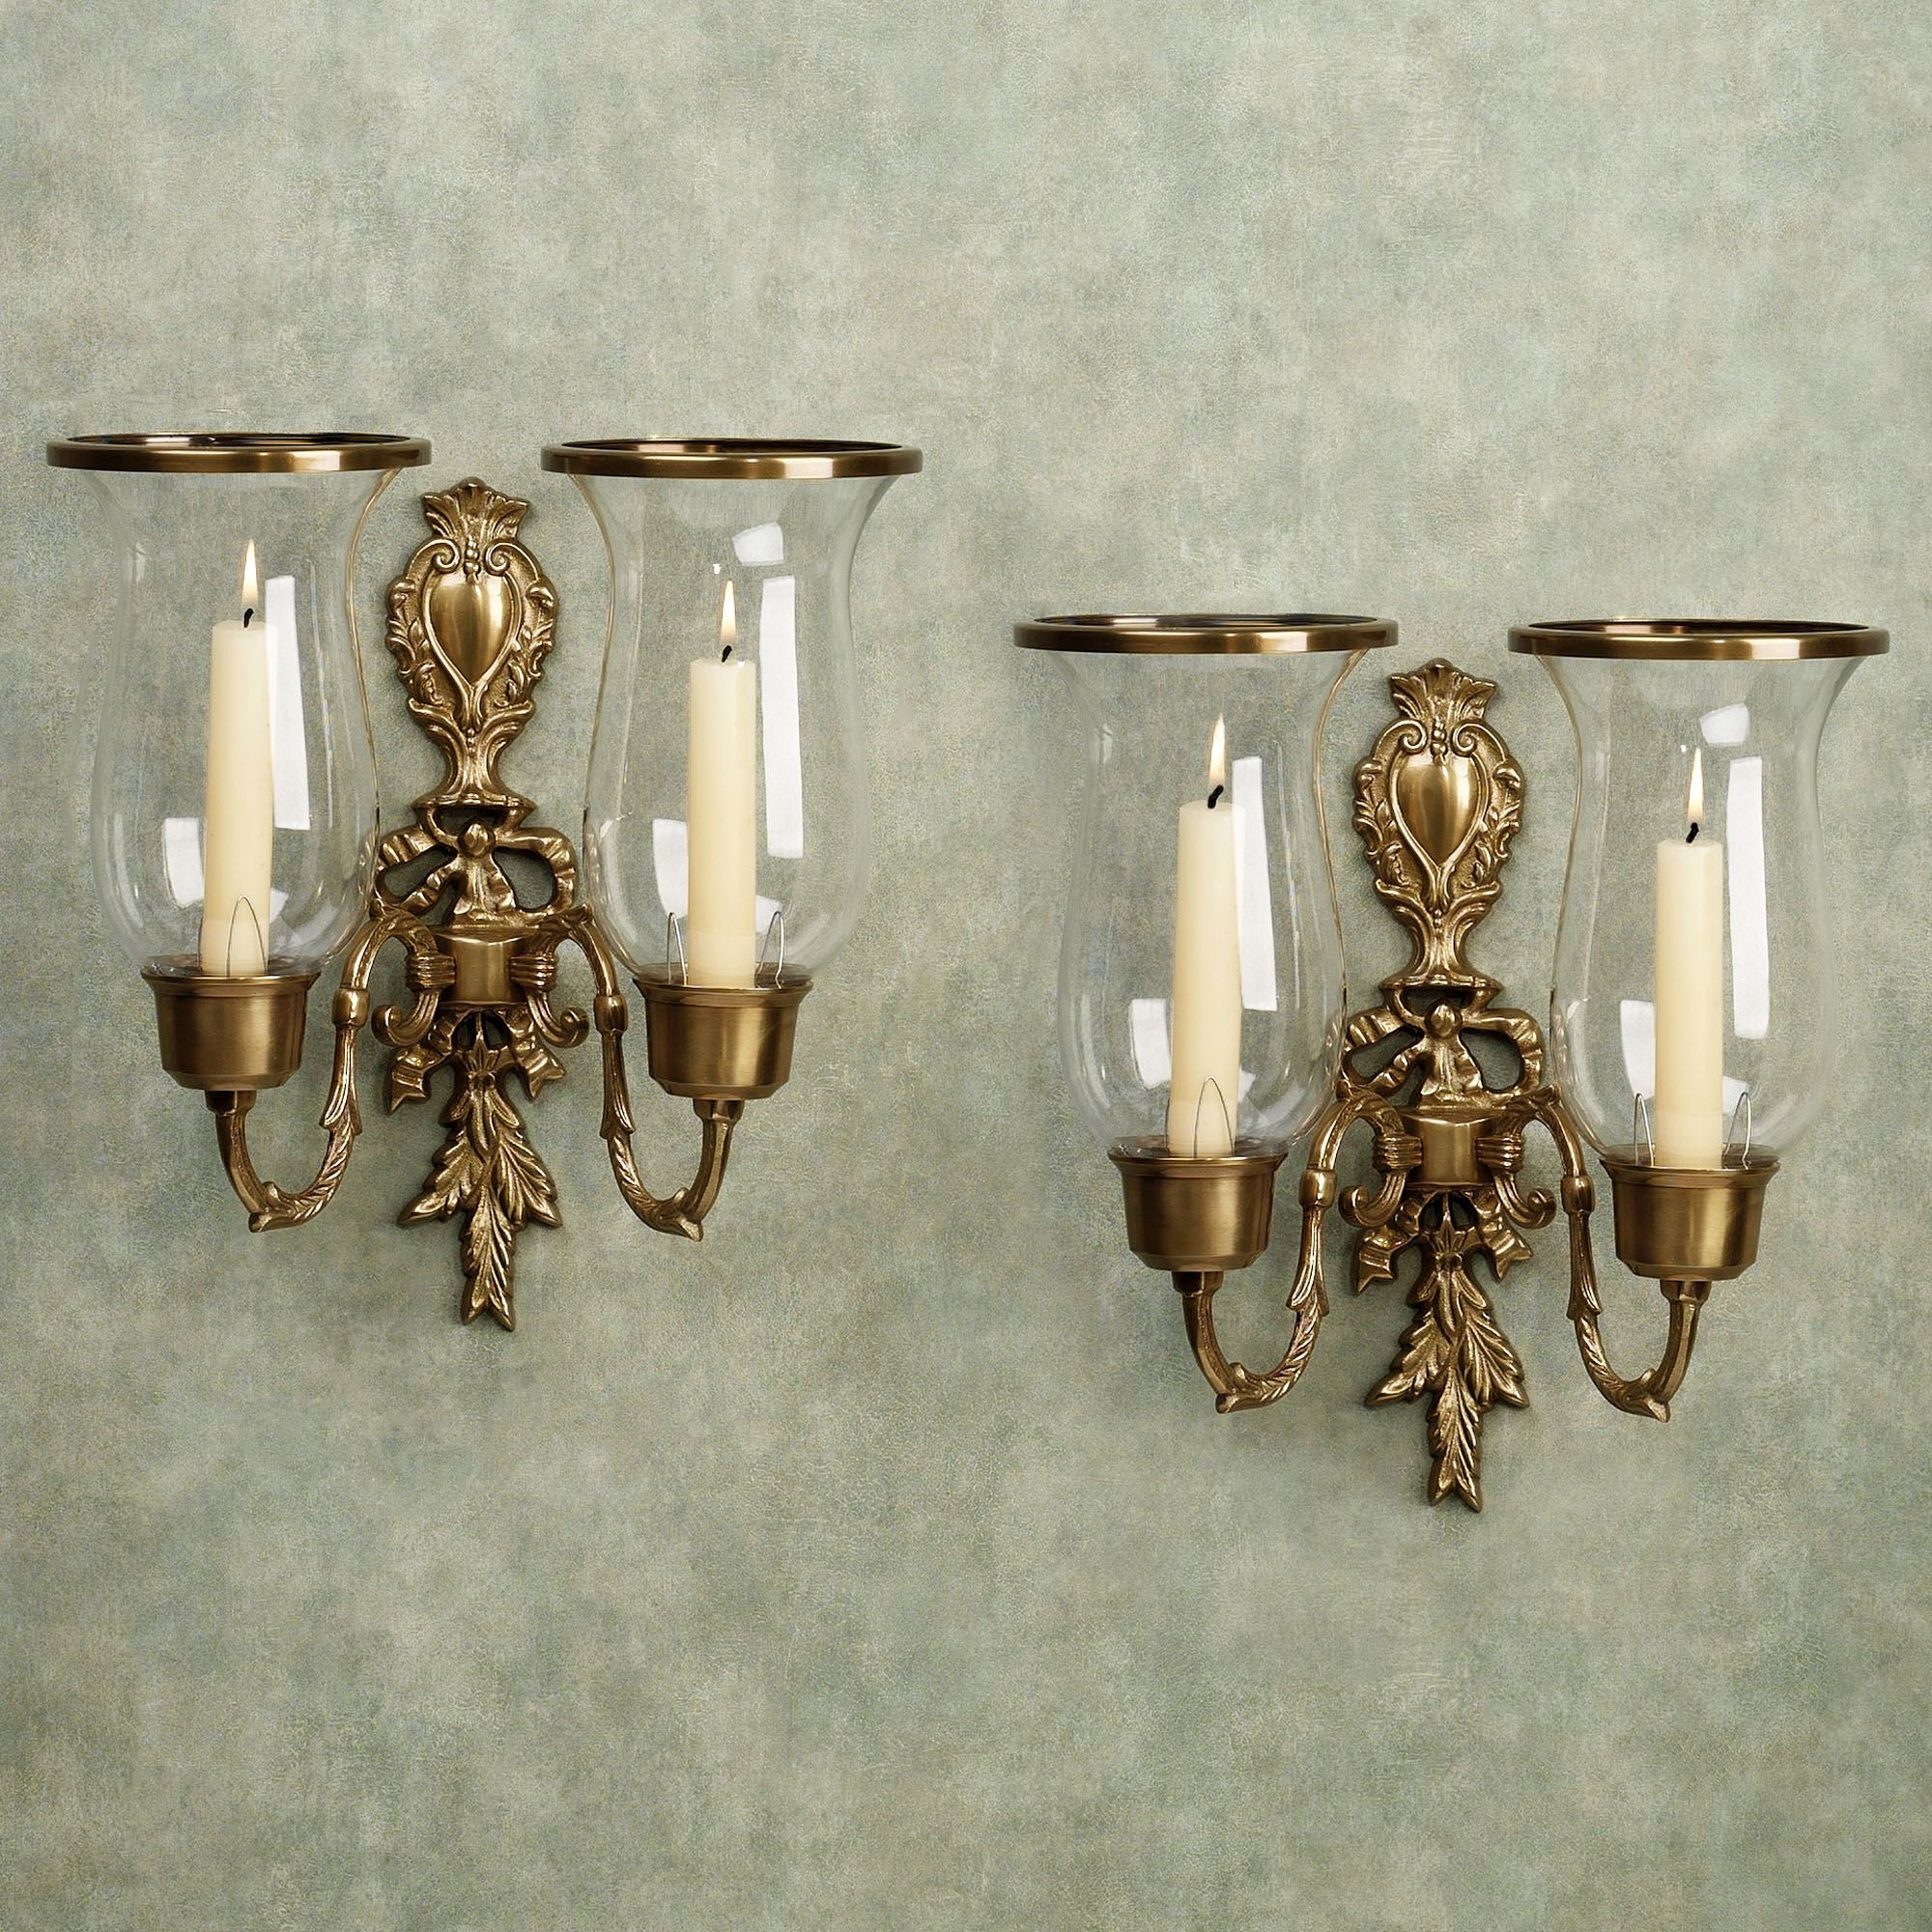 Nerissa Antique Brass Double Wall Sconce Pair on Brass Wall Sconces Non Electric Lighting id=46860